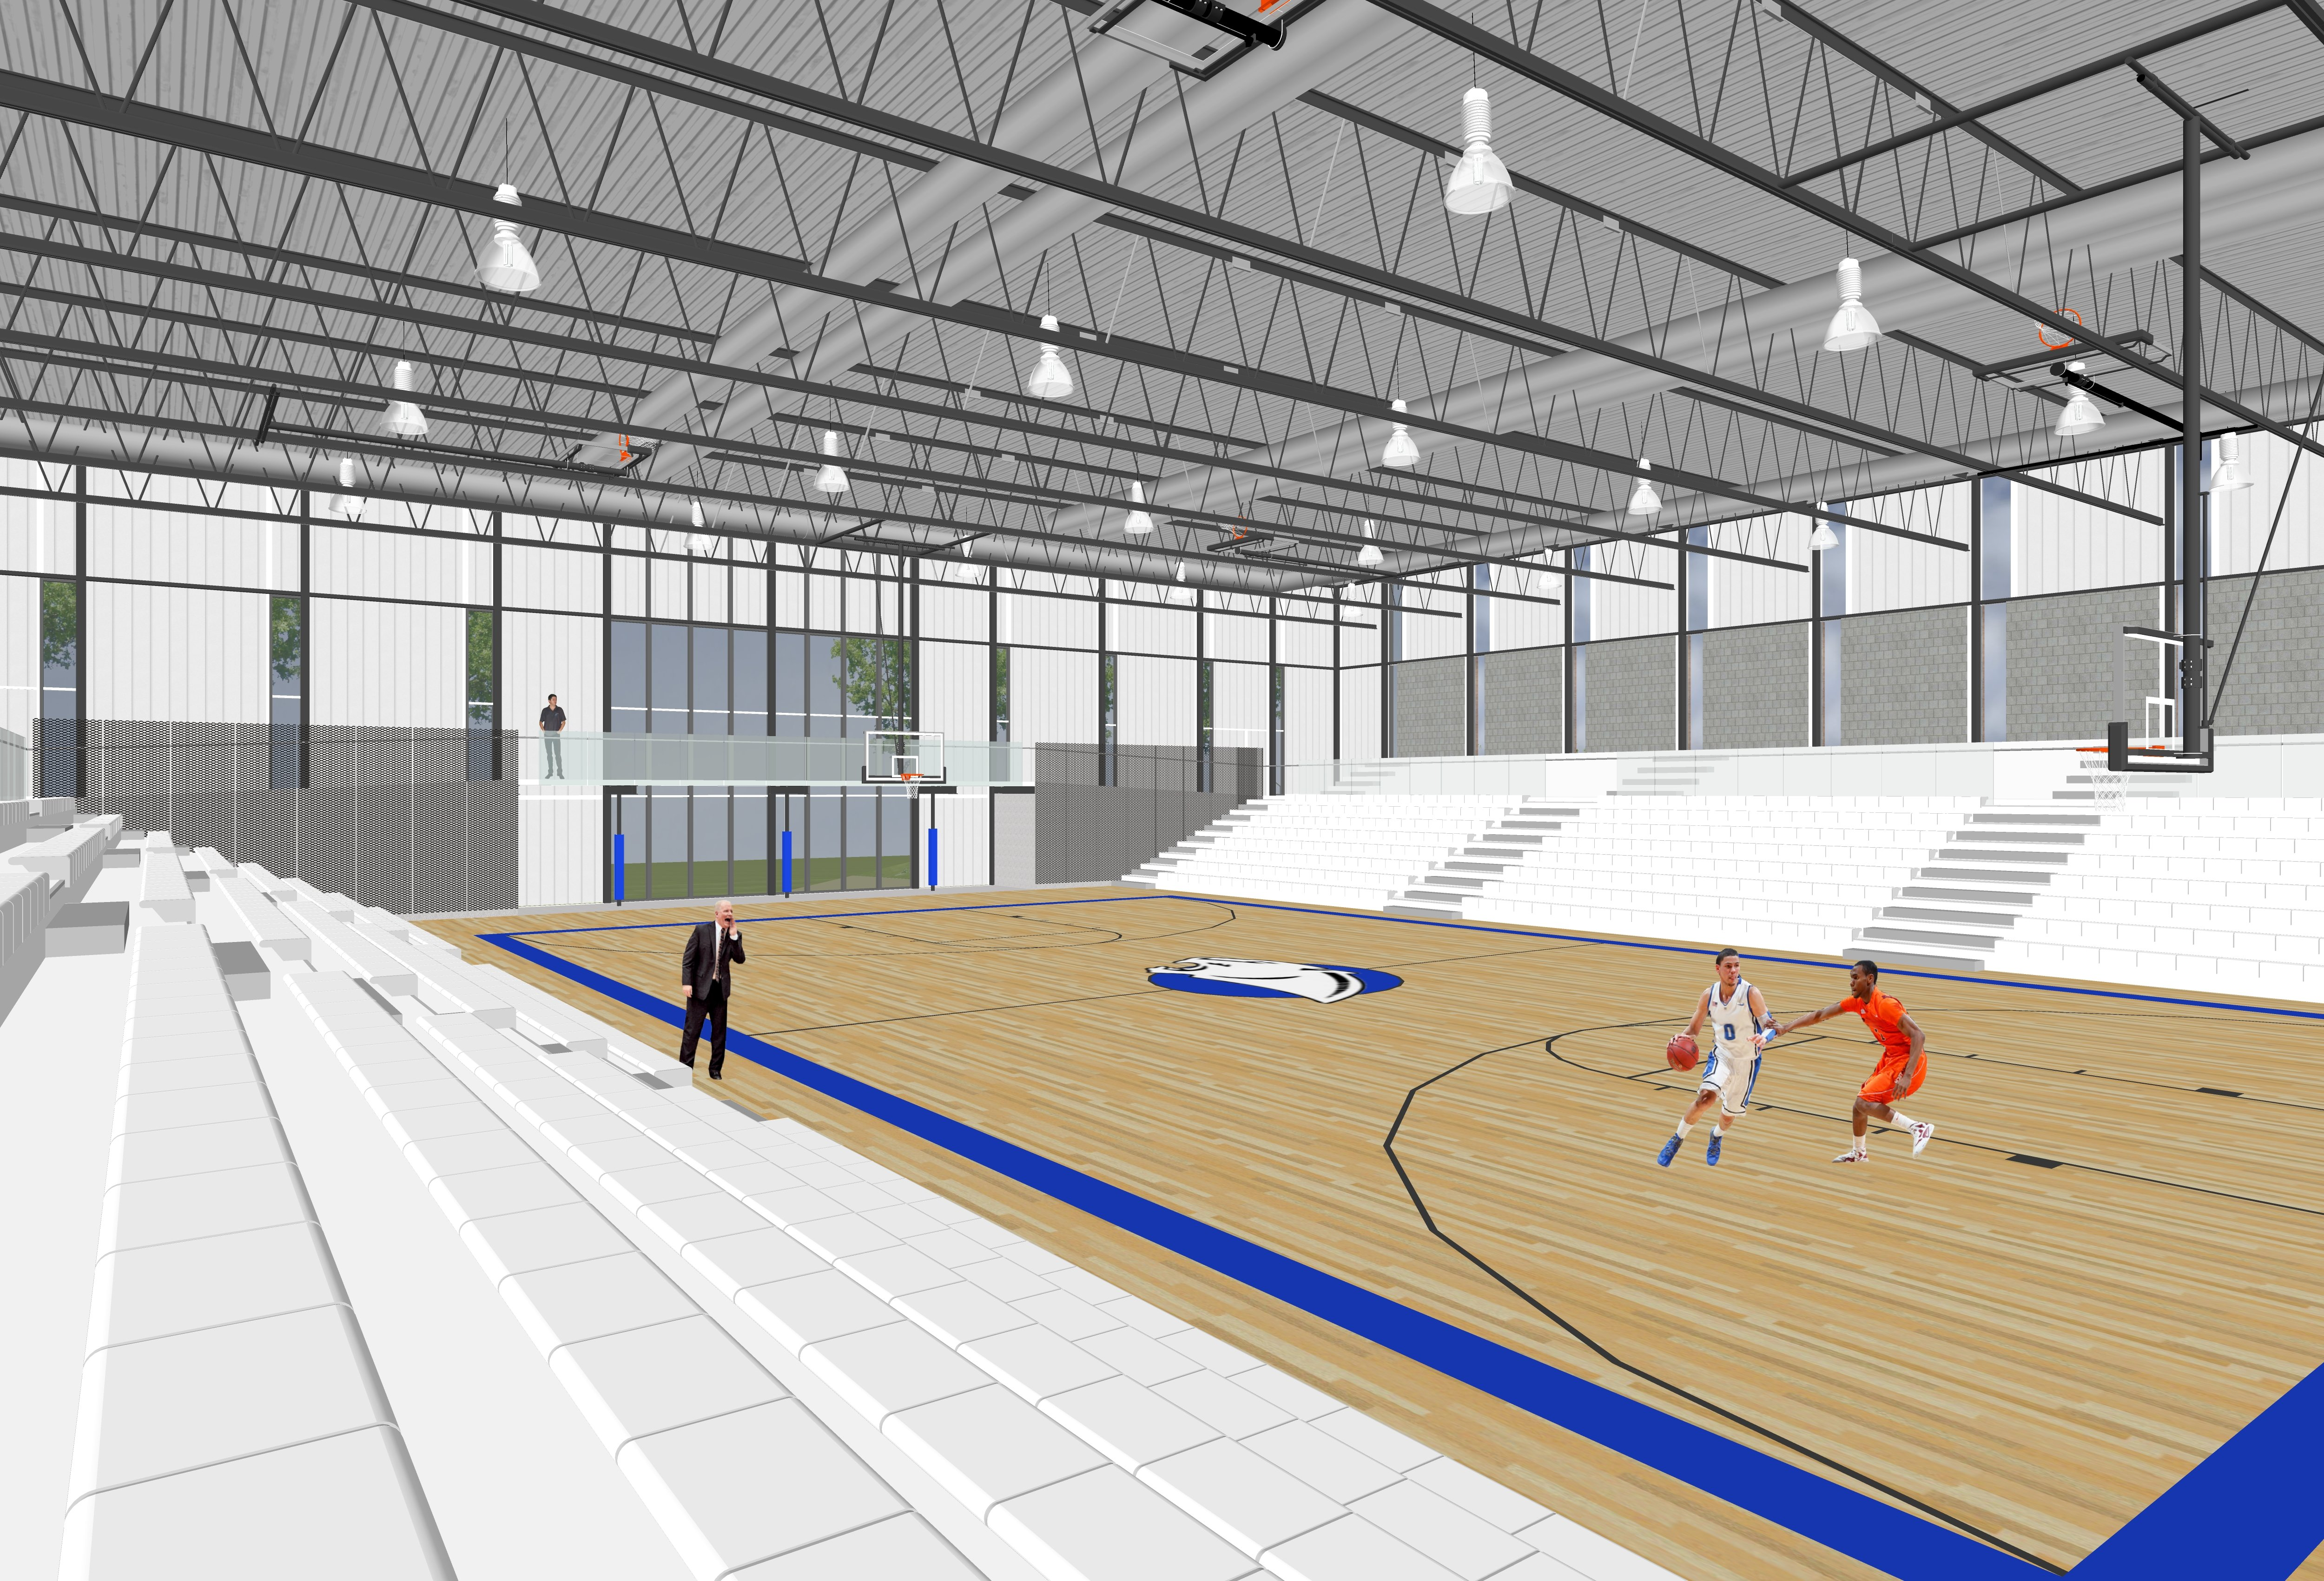 Sketches of high school renovation plans released kwwl for Renovation drawings